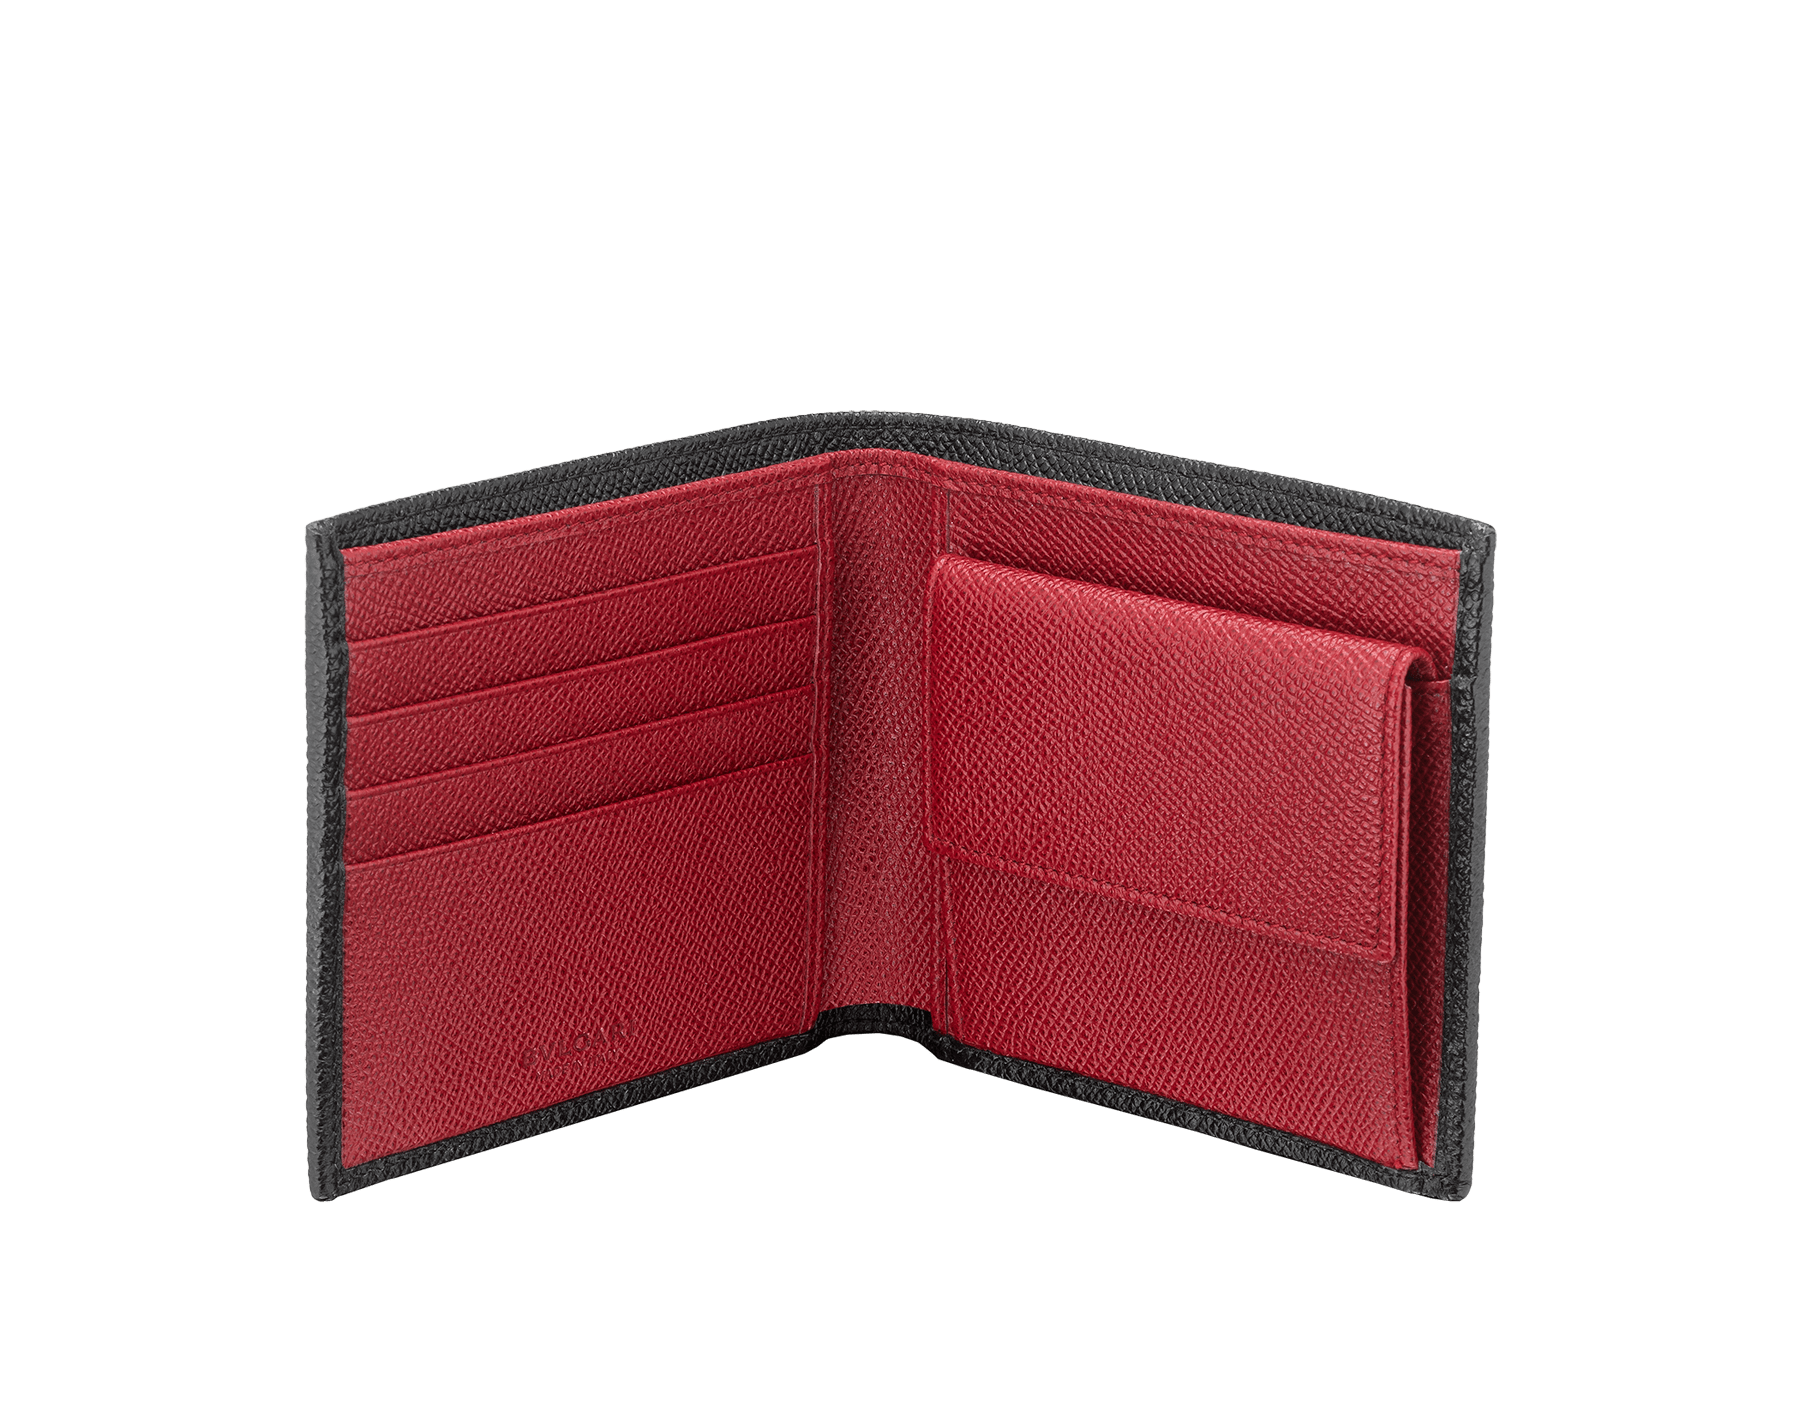 BVLGARI BVLGARI man wallet in black and ruby dahlia grain calf leather and black nappa lining. Iconic logo décor in palladium plated brass. 288273 image 2